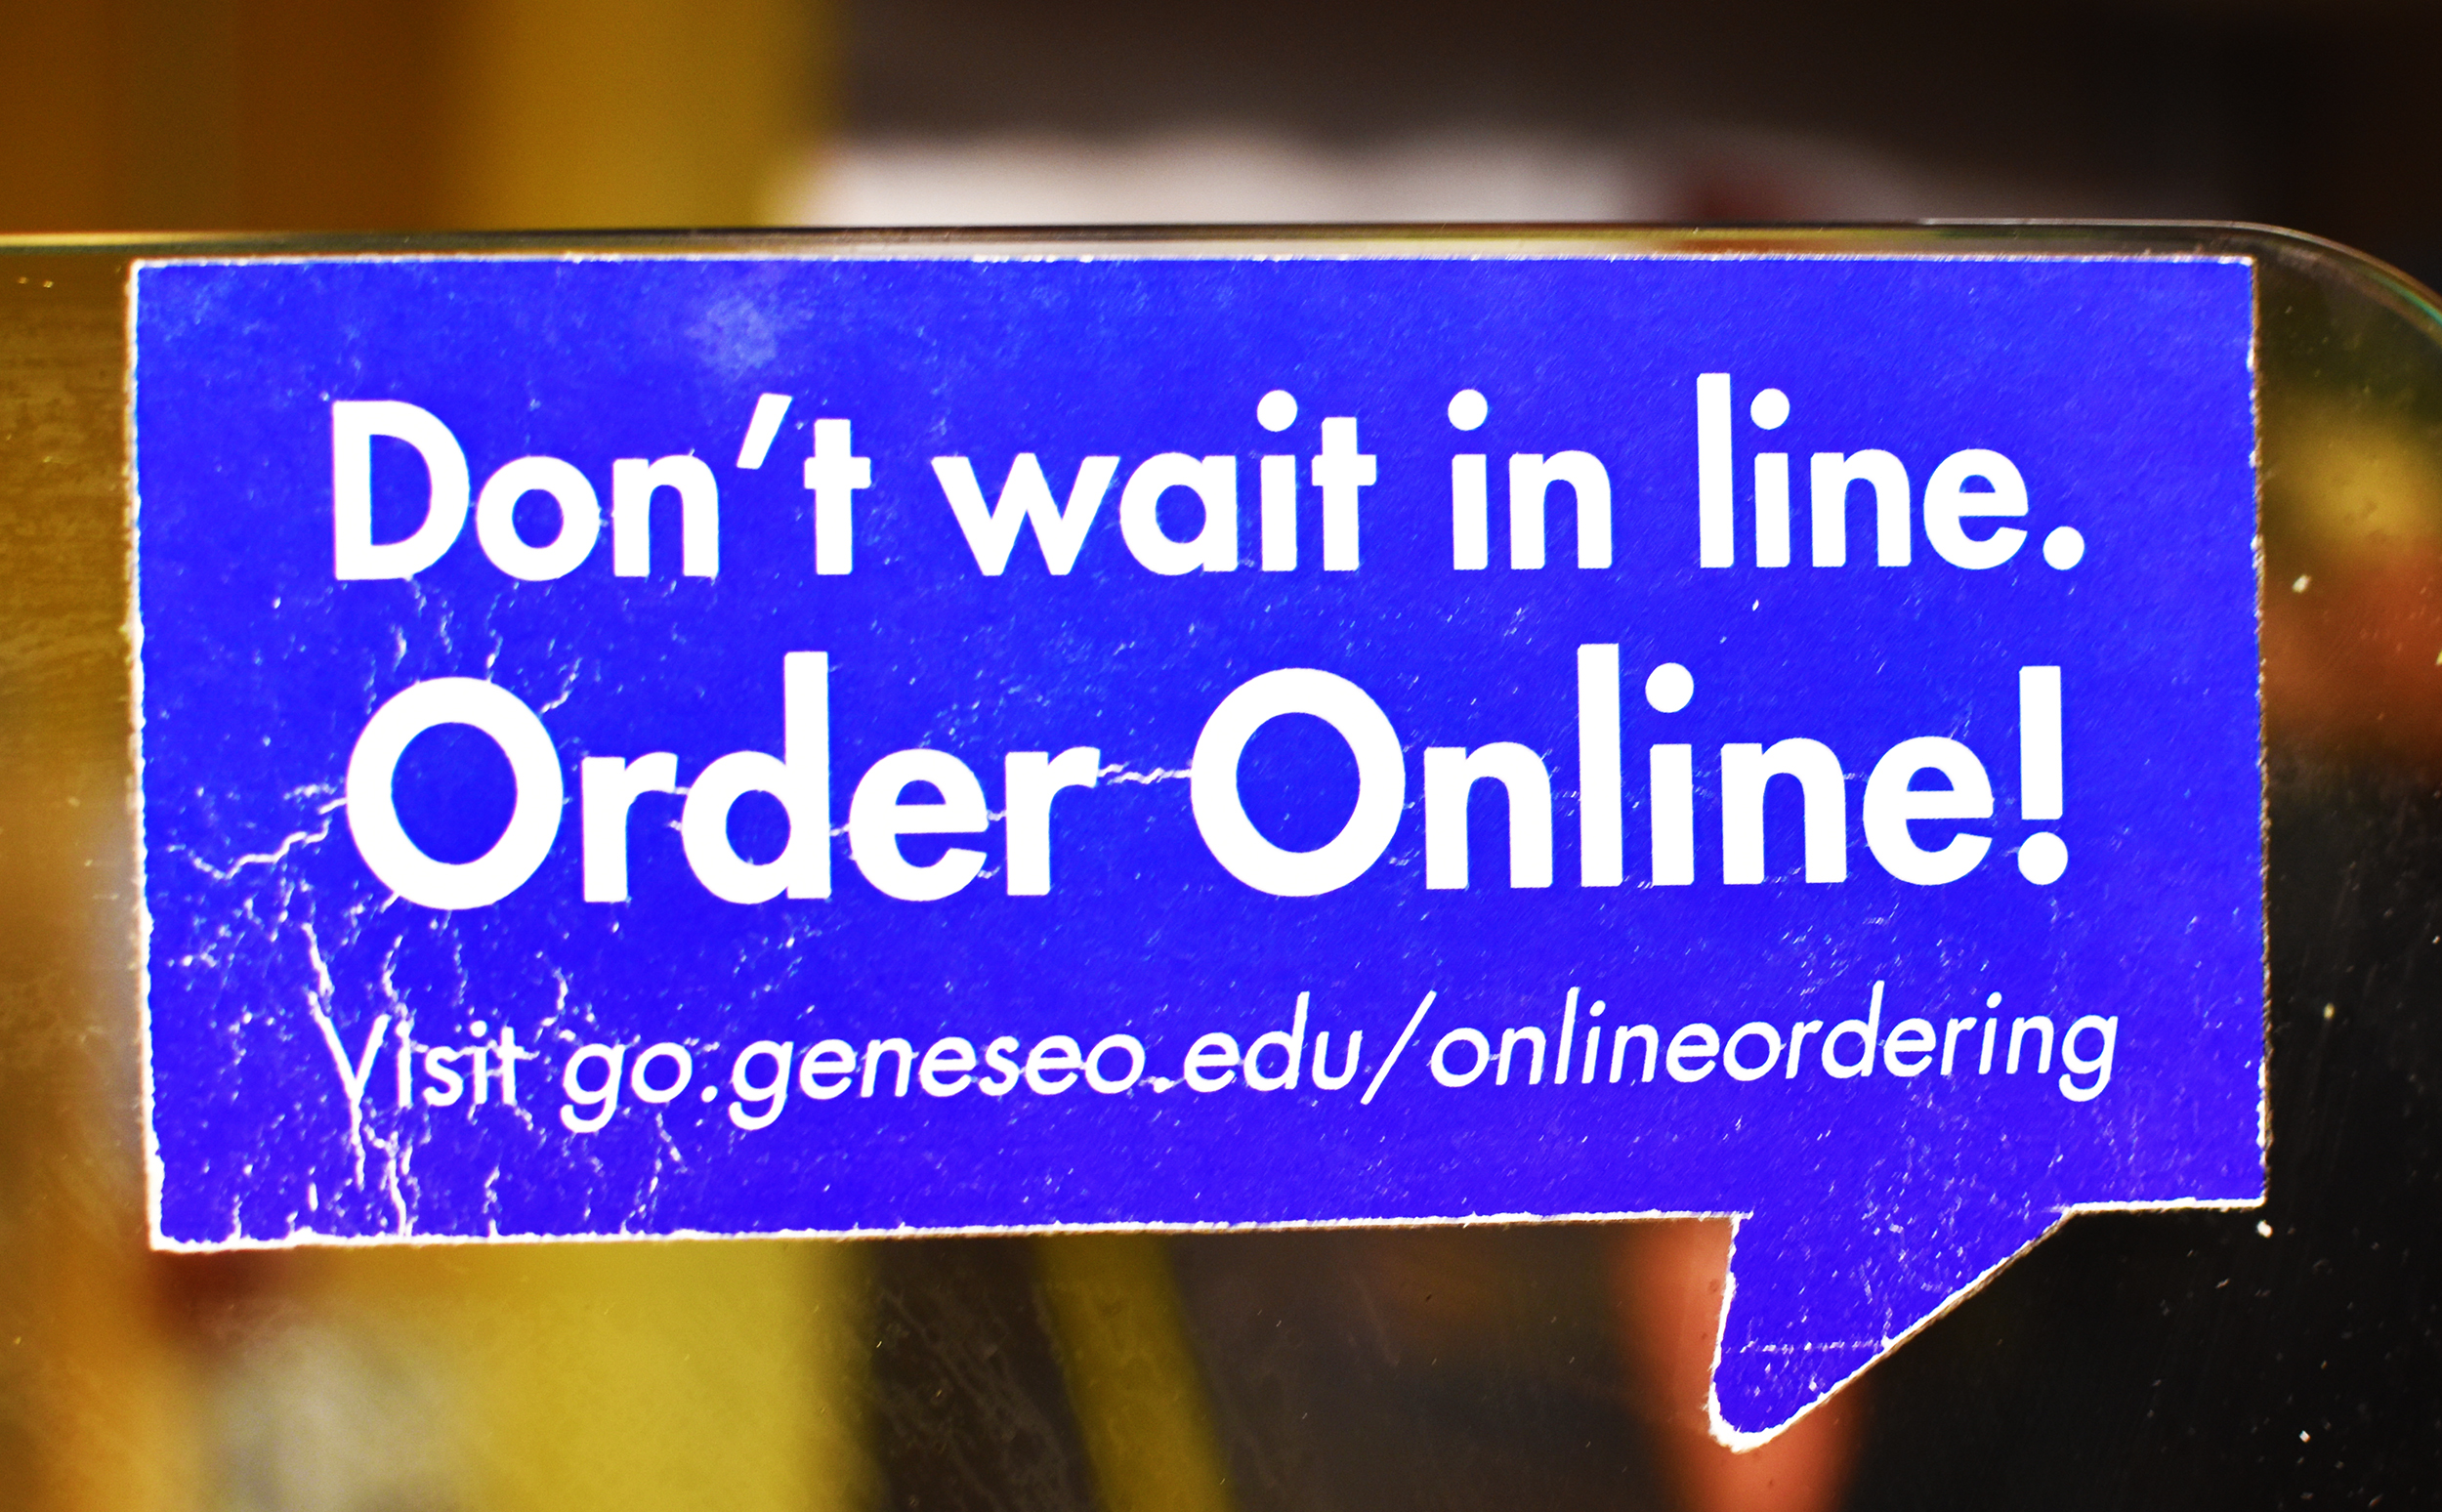 Online ordering was introduced in the spring 2018 semester and went offline during the fall 2018 semester because of an issue with the program's technology. As of Tuesday, online ordering has been back online at certain locations, and will be fully operational by the end of the week (Josie Kwani/assoc. photo editor).